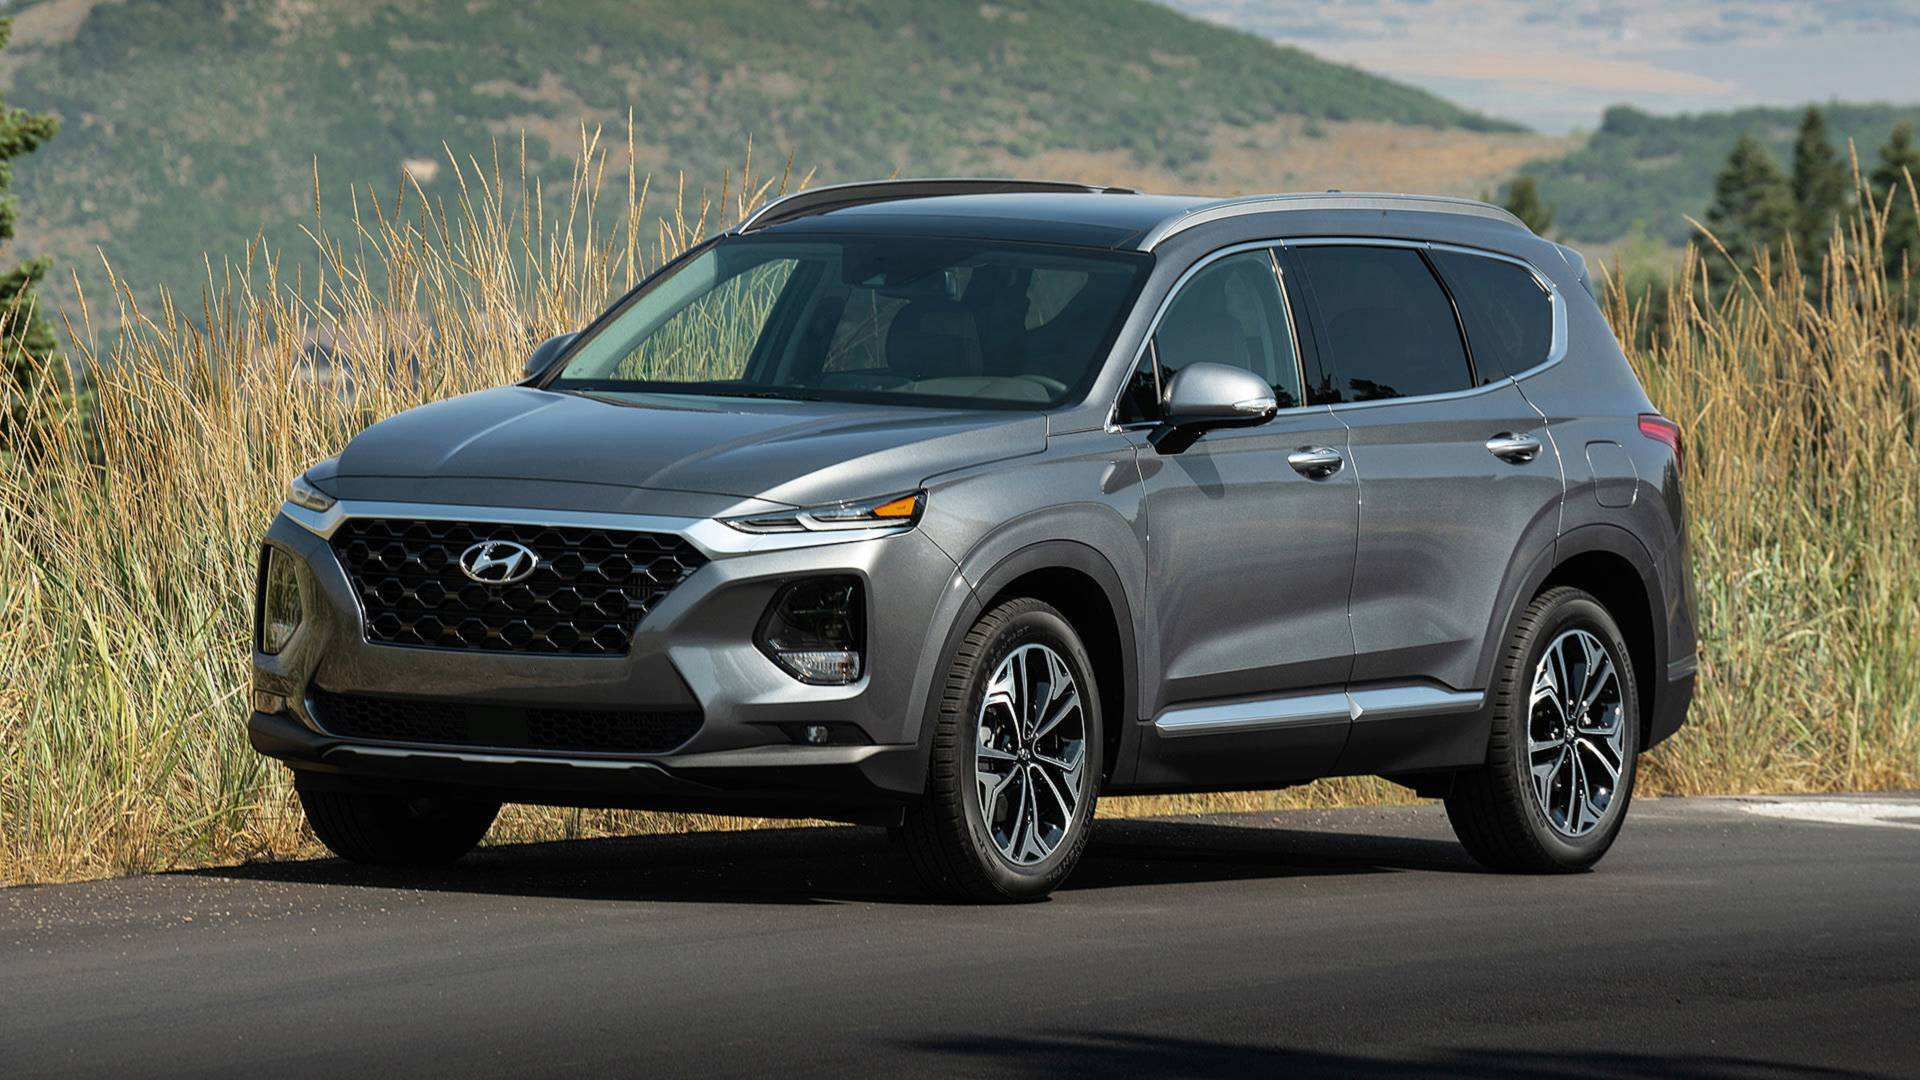 33 All New 2019 Hyundai Santa Fe Exterior with 2019 Hyundai Santa Fe